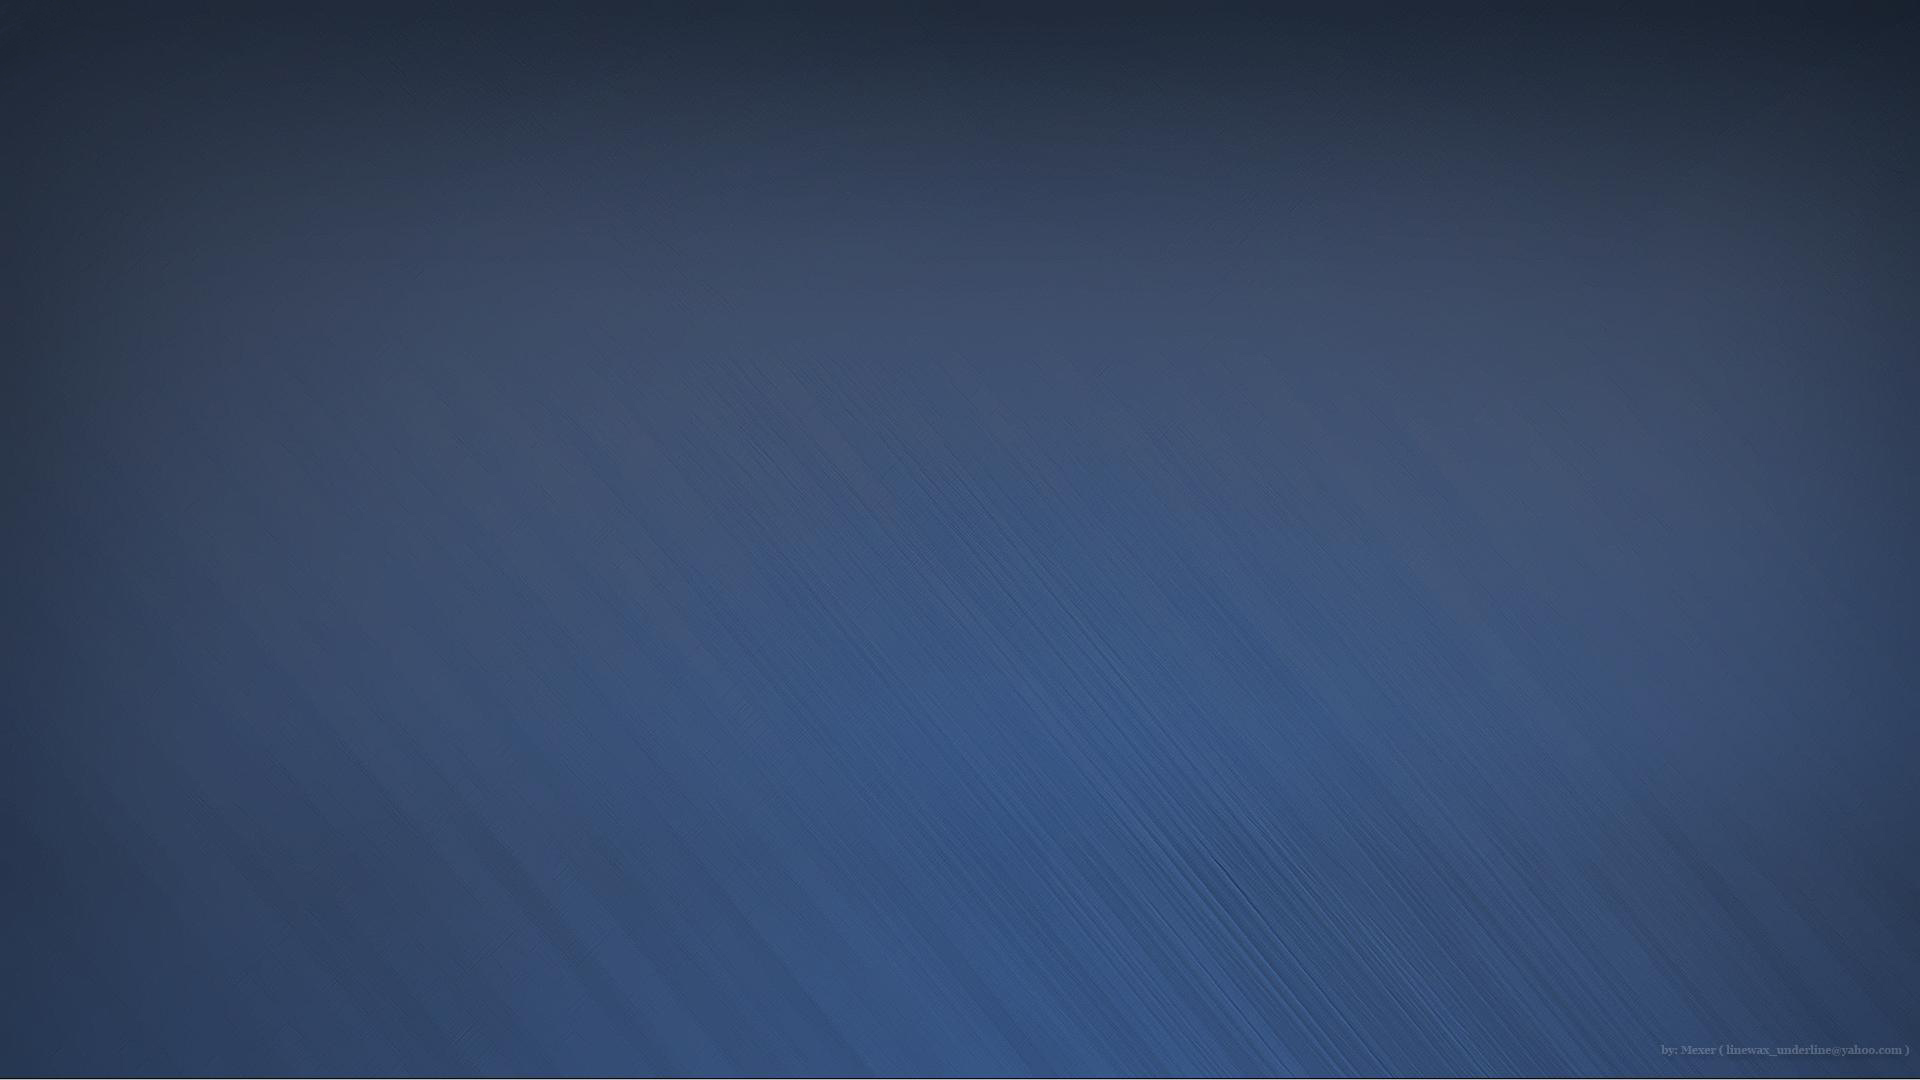 simple blue backgrounds hd - photo #2